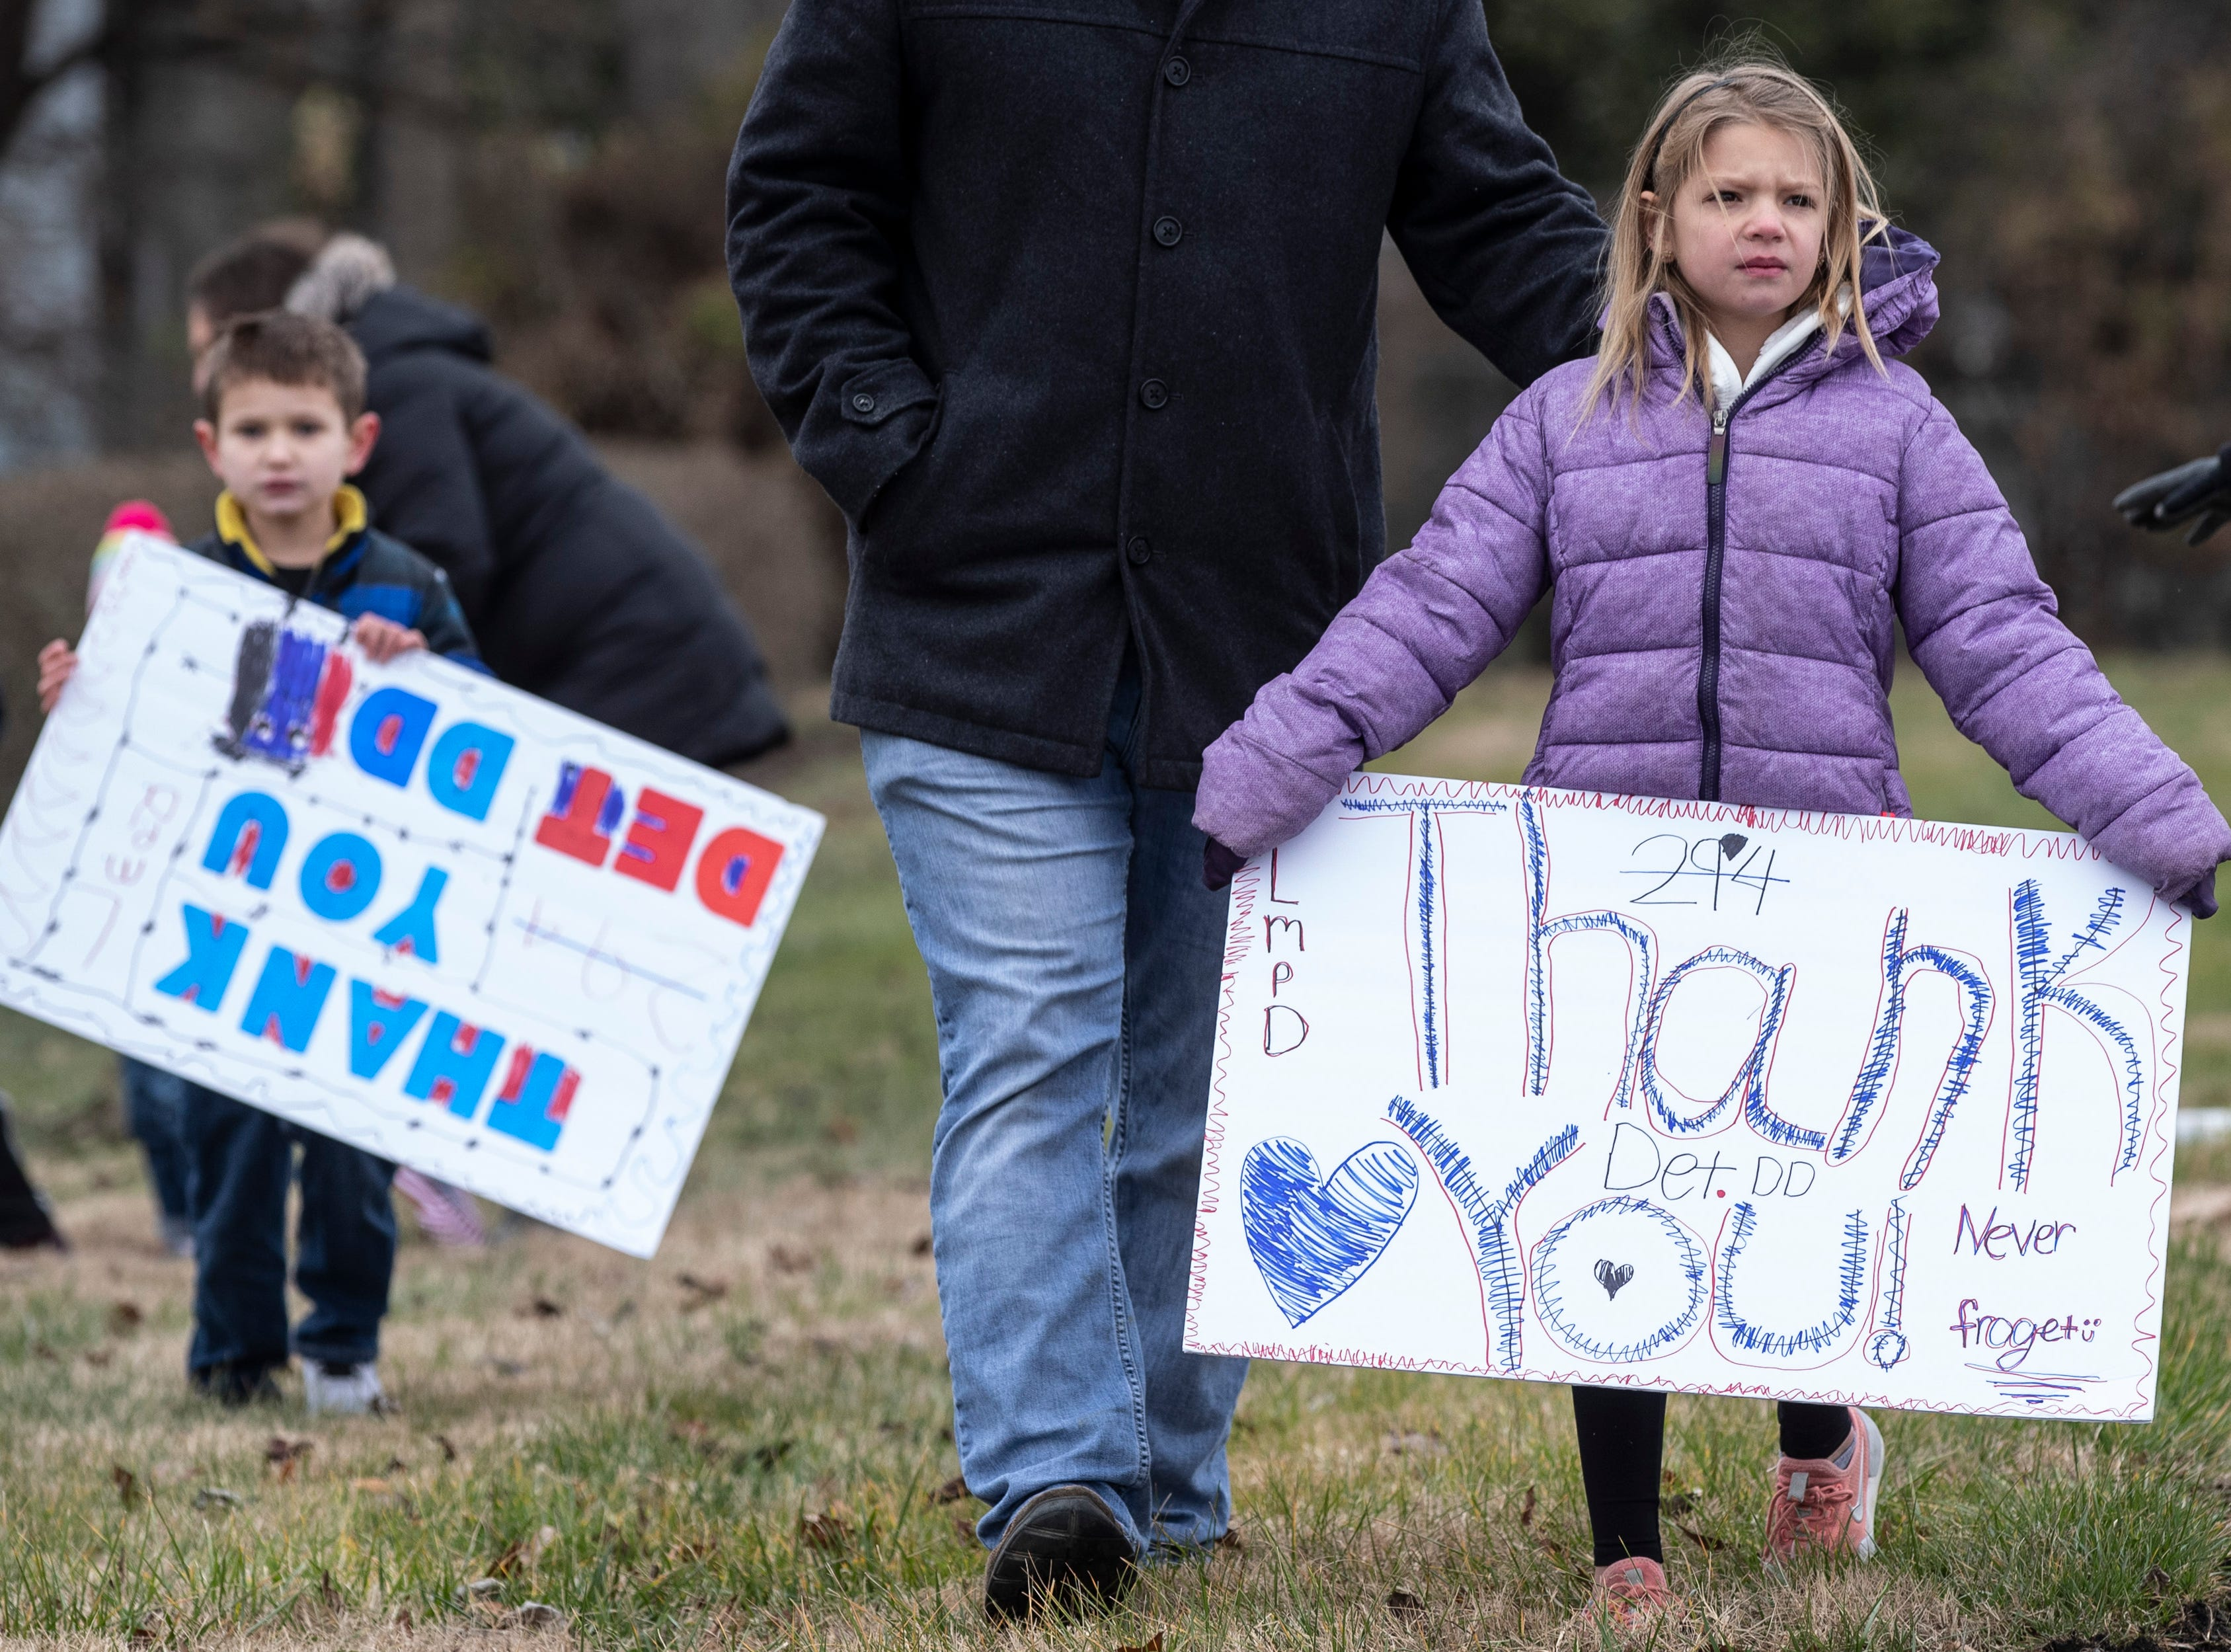 Children hold signs in honor of Det. Deidre Mengedoht along Bardstown Road on Saturday. December 29, 2018